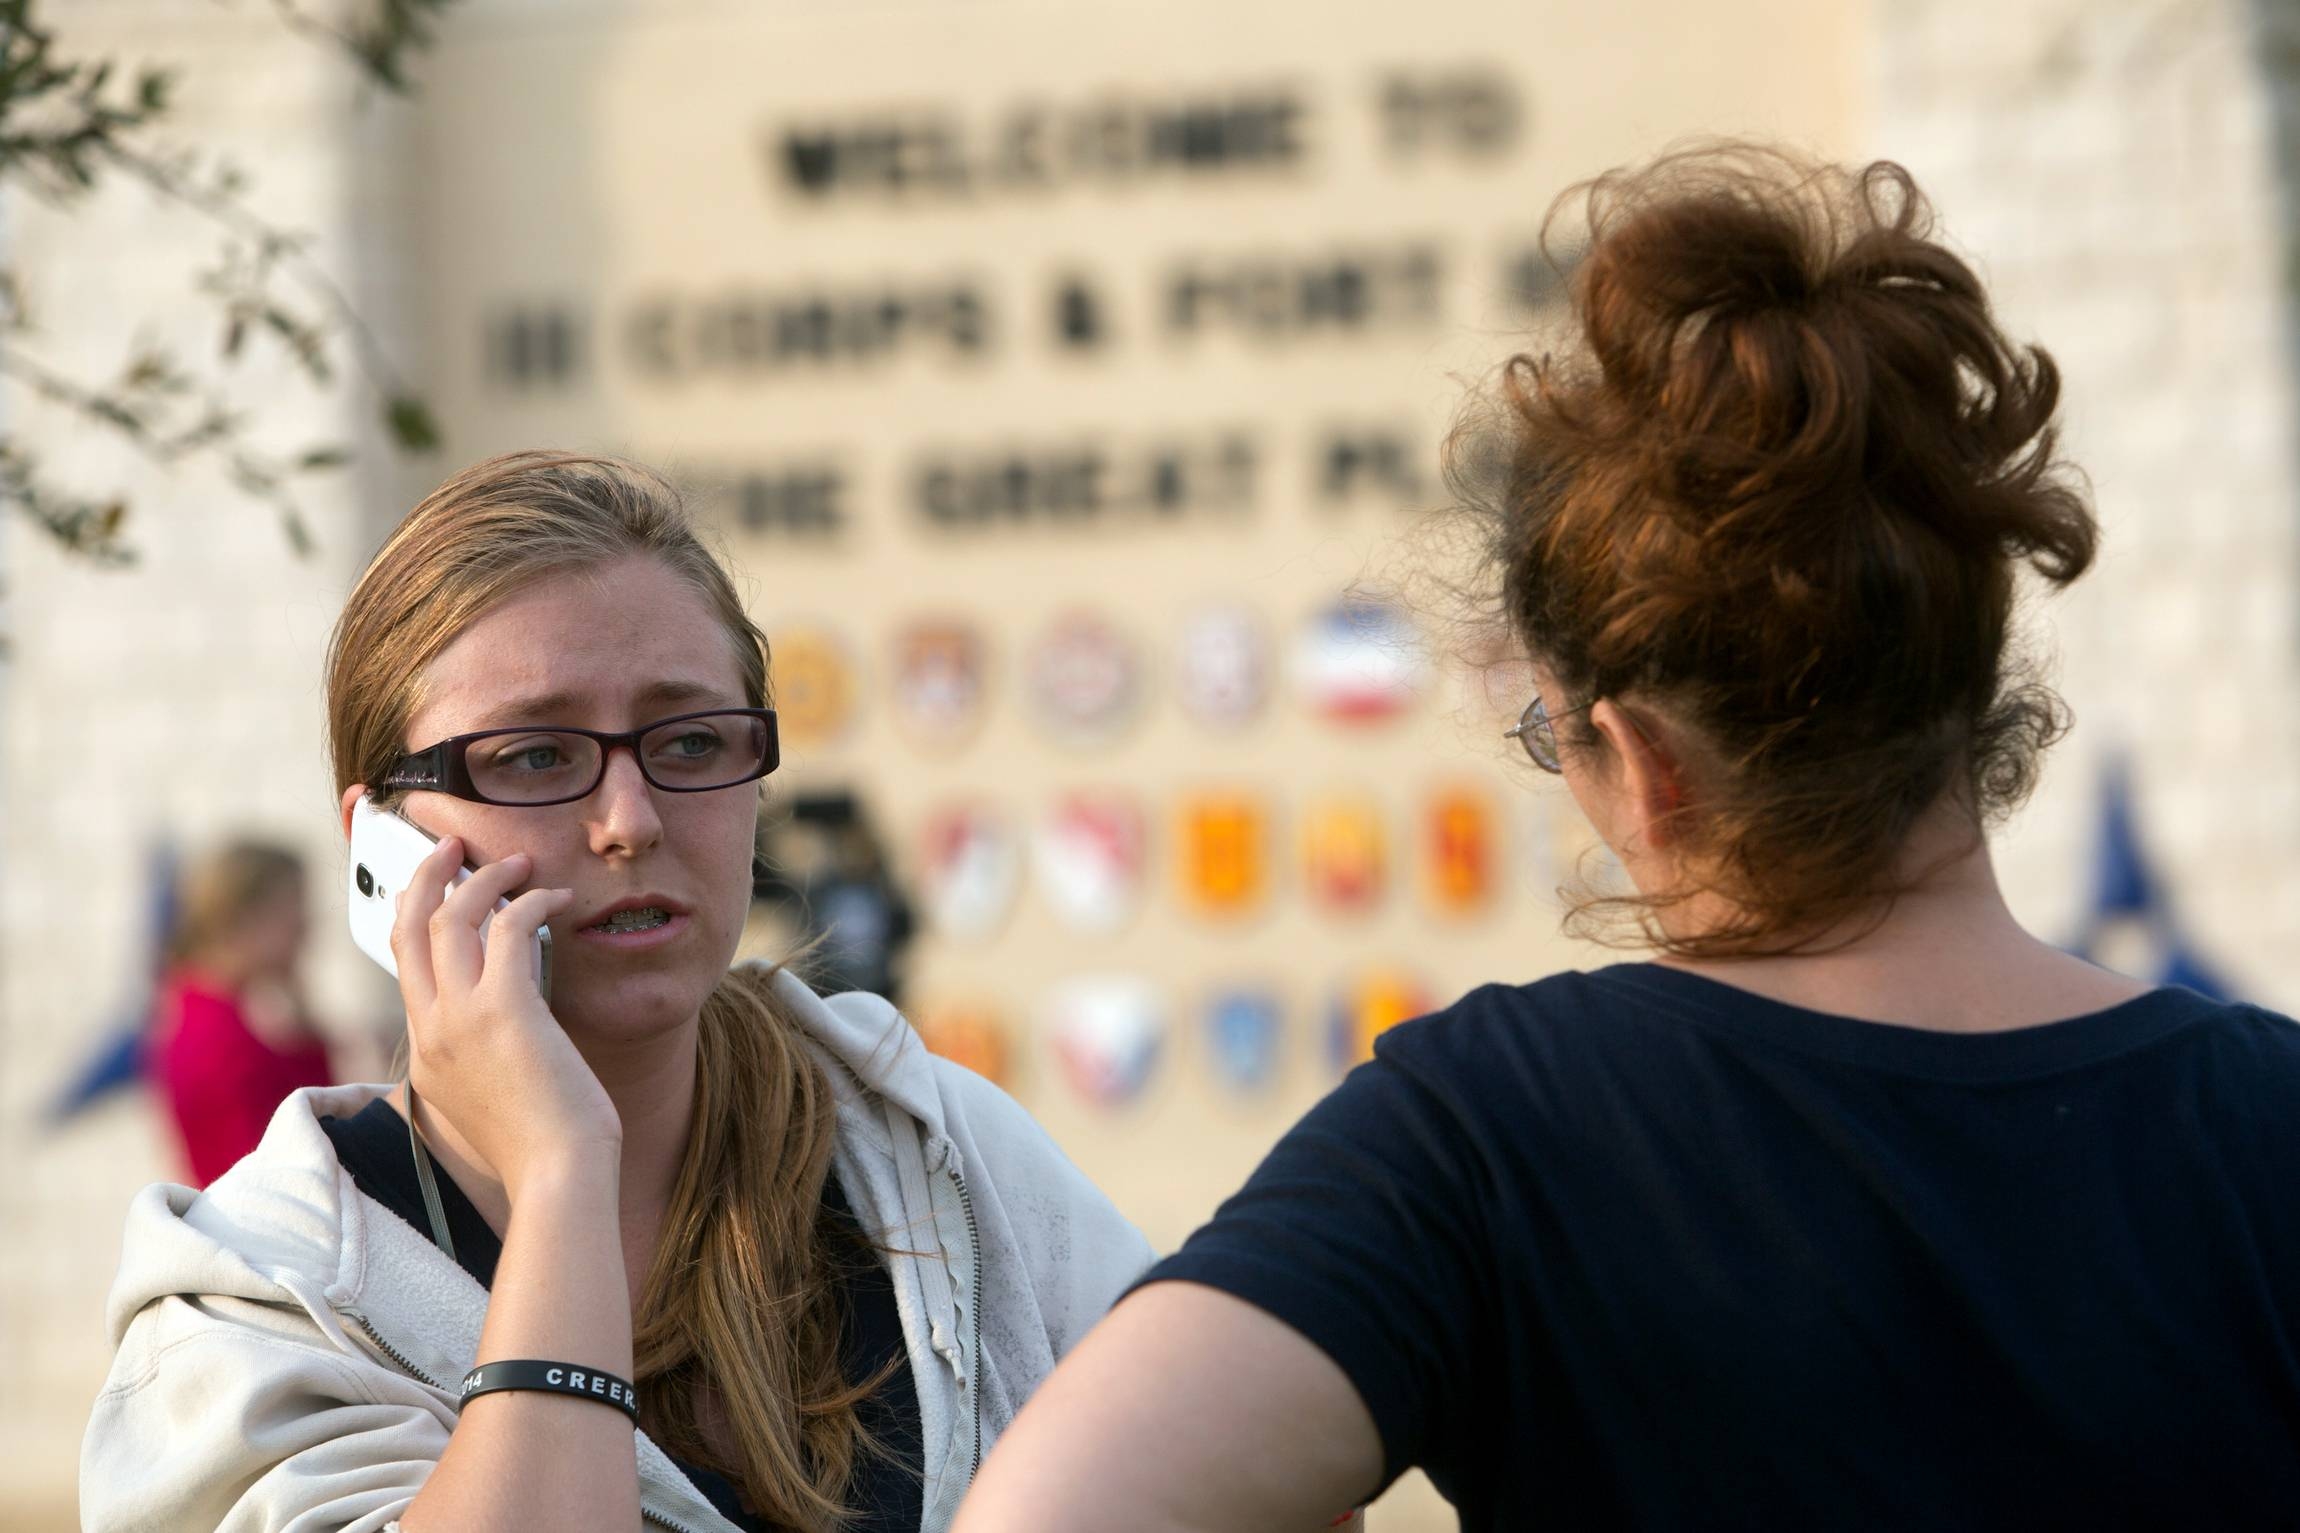 Krystina Cassidy, left, and Dianna Simpson attempt to make contact with their husbands who are stationed inside Fort Hood while standing outside of the Bernie Beck Gate on Wednesday in Fort Hood, Texas. One person was killed and 14 injured in the shooting, and officials at the base said the shooter is believed to be dead.